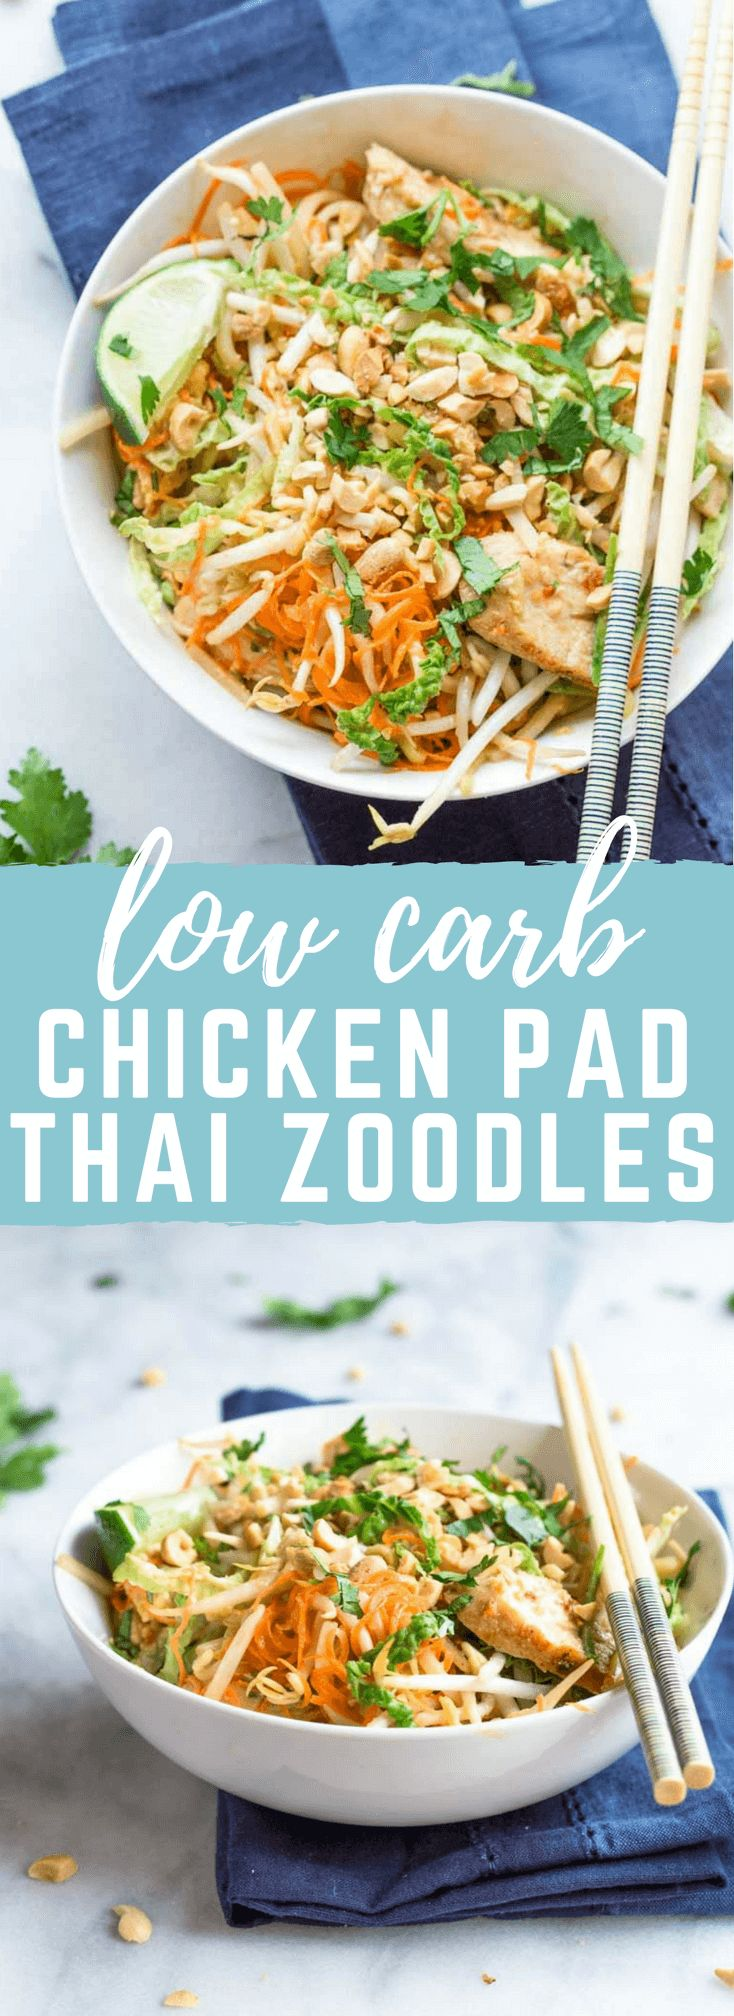 These Chicken Pad Thai Zoodles have so much flavor. This dinner is lower carb thanks to all the veggies like zucchini, carrots, bean sprouts, and cabbage. Grab the chopsticks and get this on your dinner table fast!